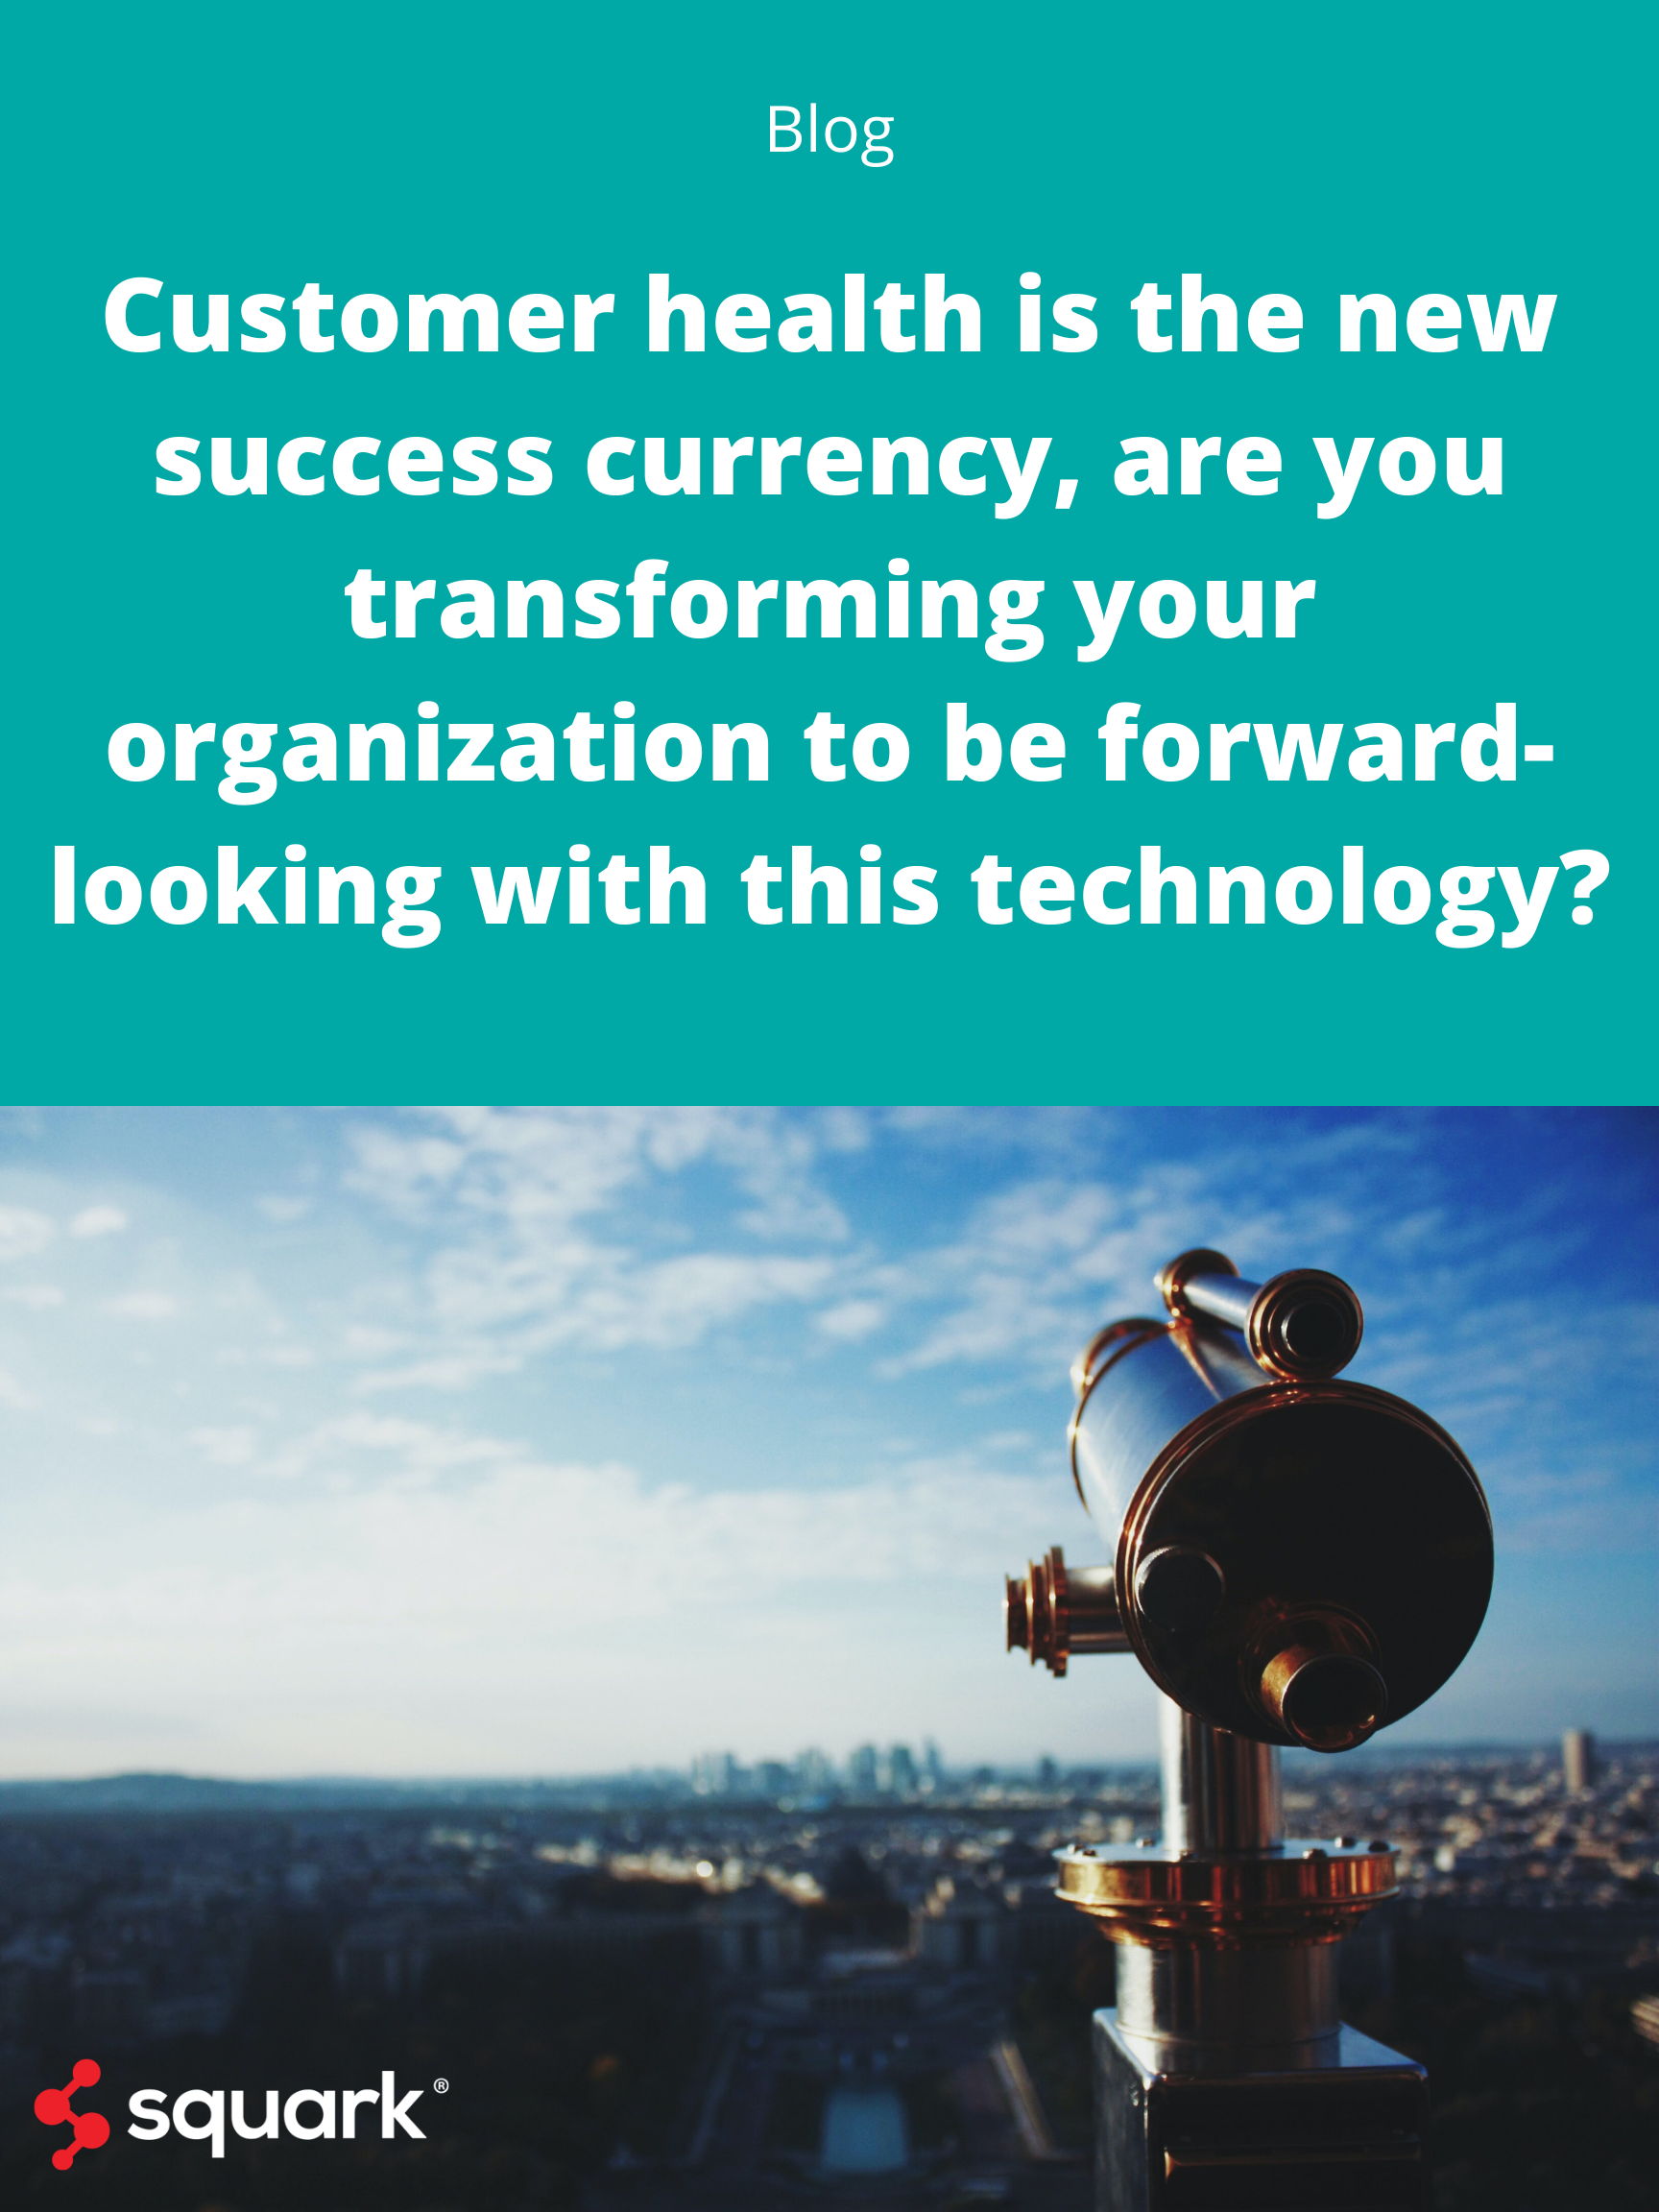 Customer health is the new success currency...Blog Post Image (2)